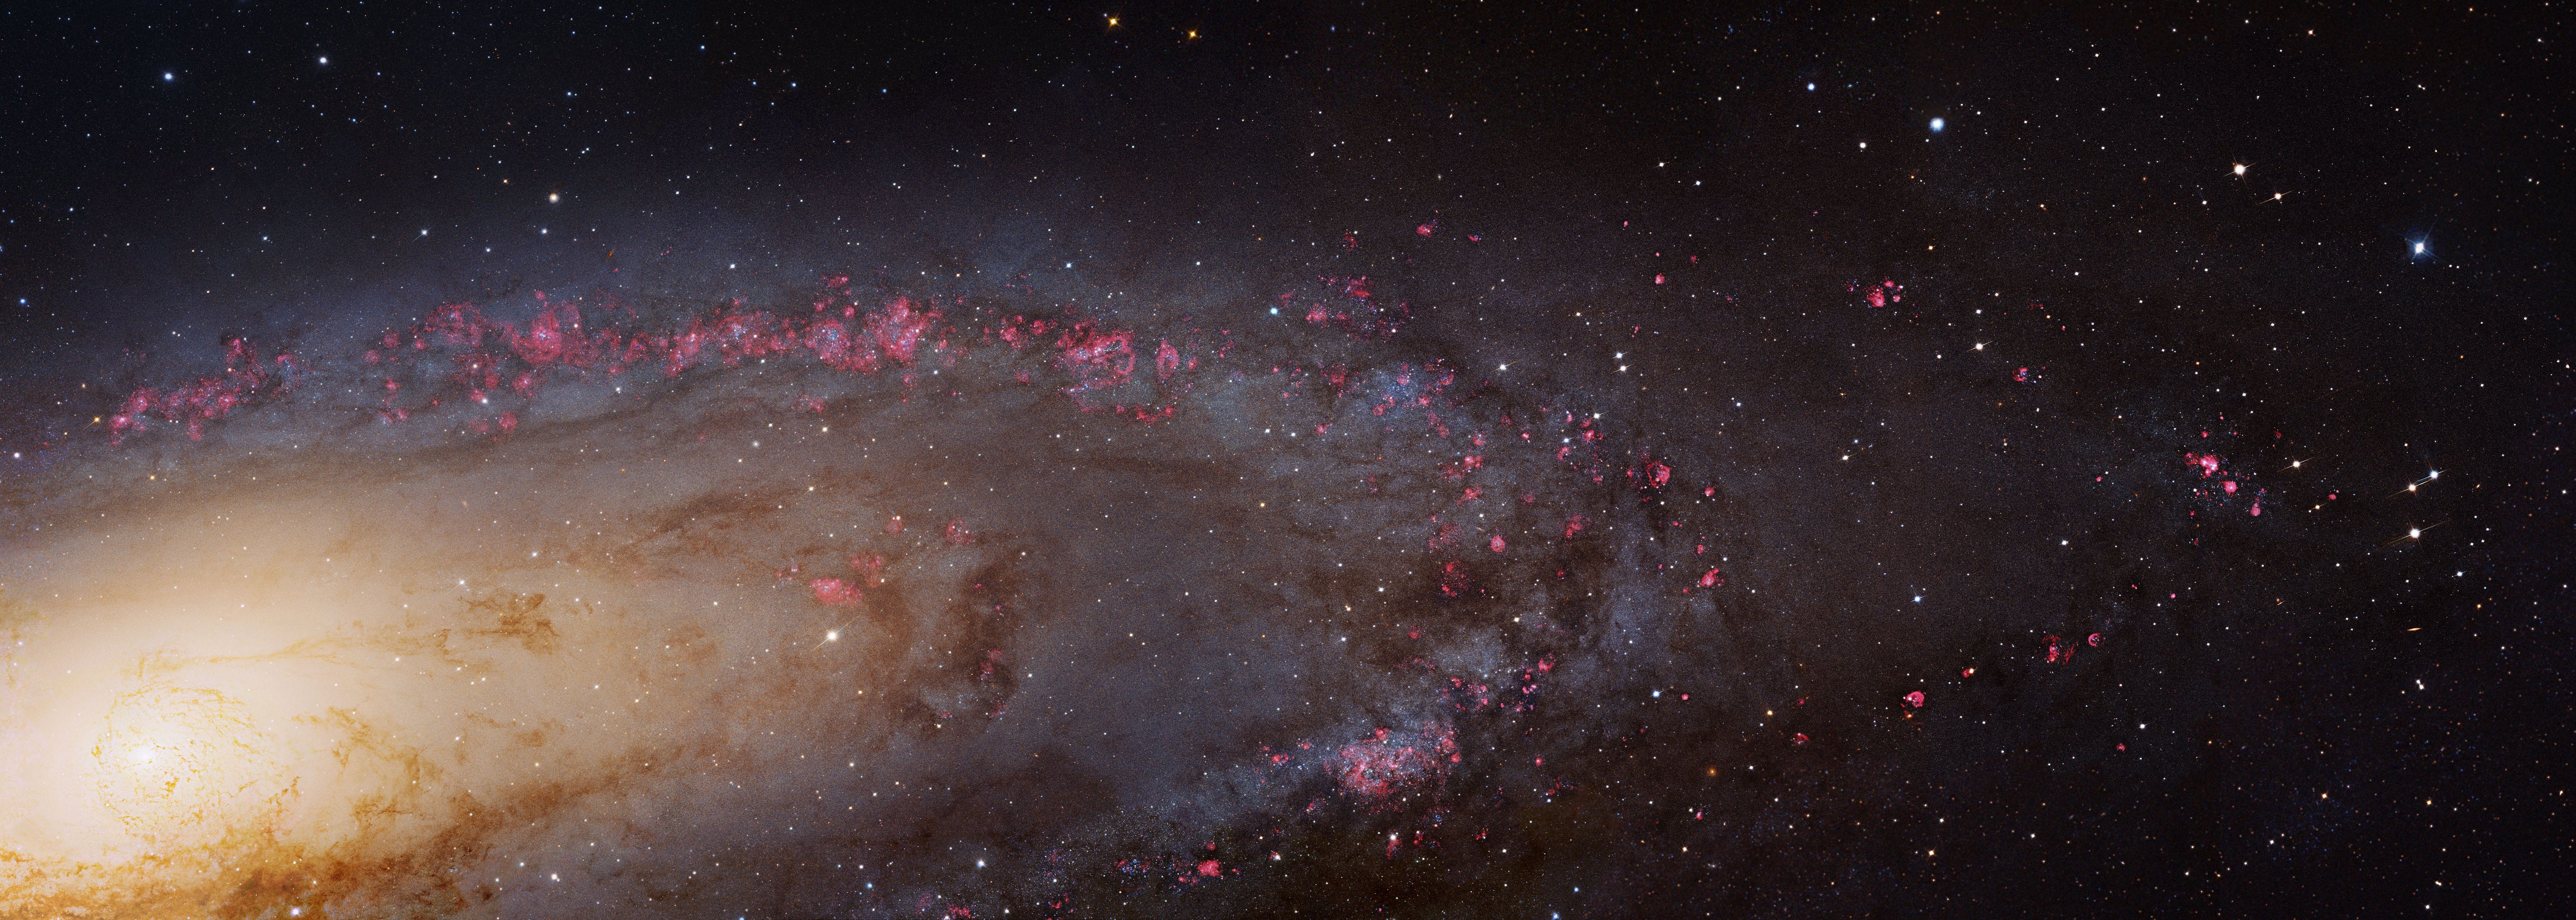 the milky way and andromeda galaxies The milky way isn't so massive after all neighbouring galaxy found to have double the amount of dark matter as our own the milky way is 800 billion more massive than our sun, study claims.